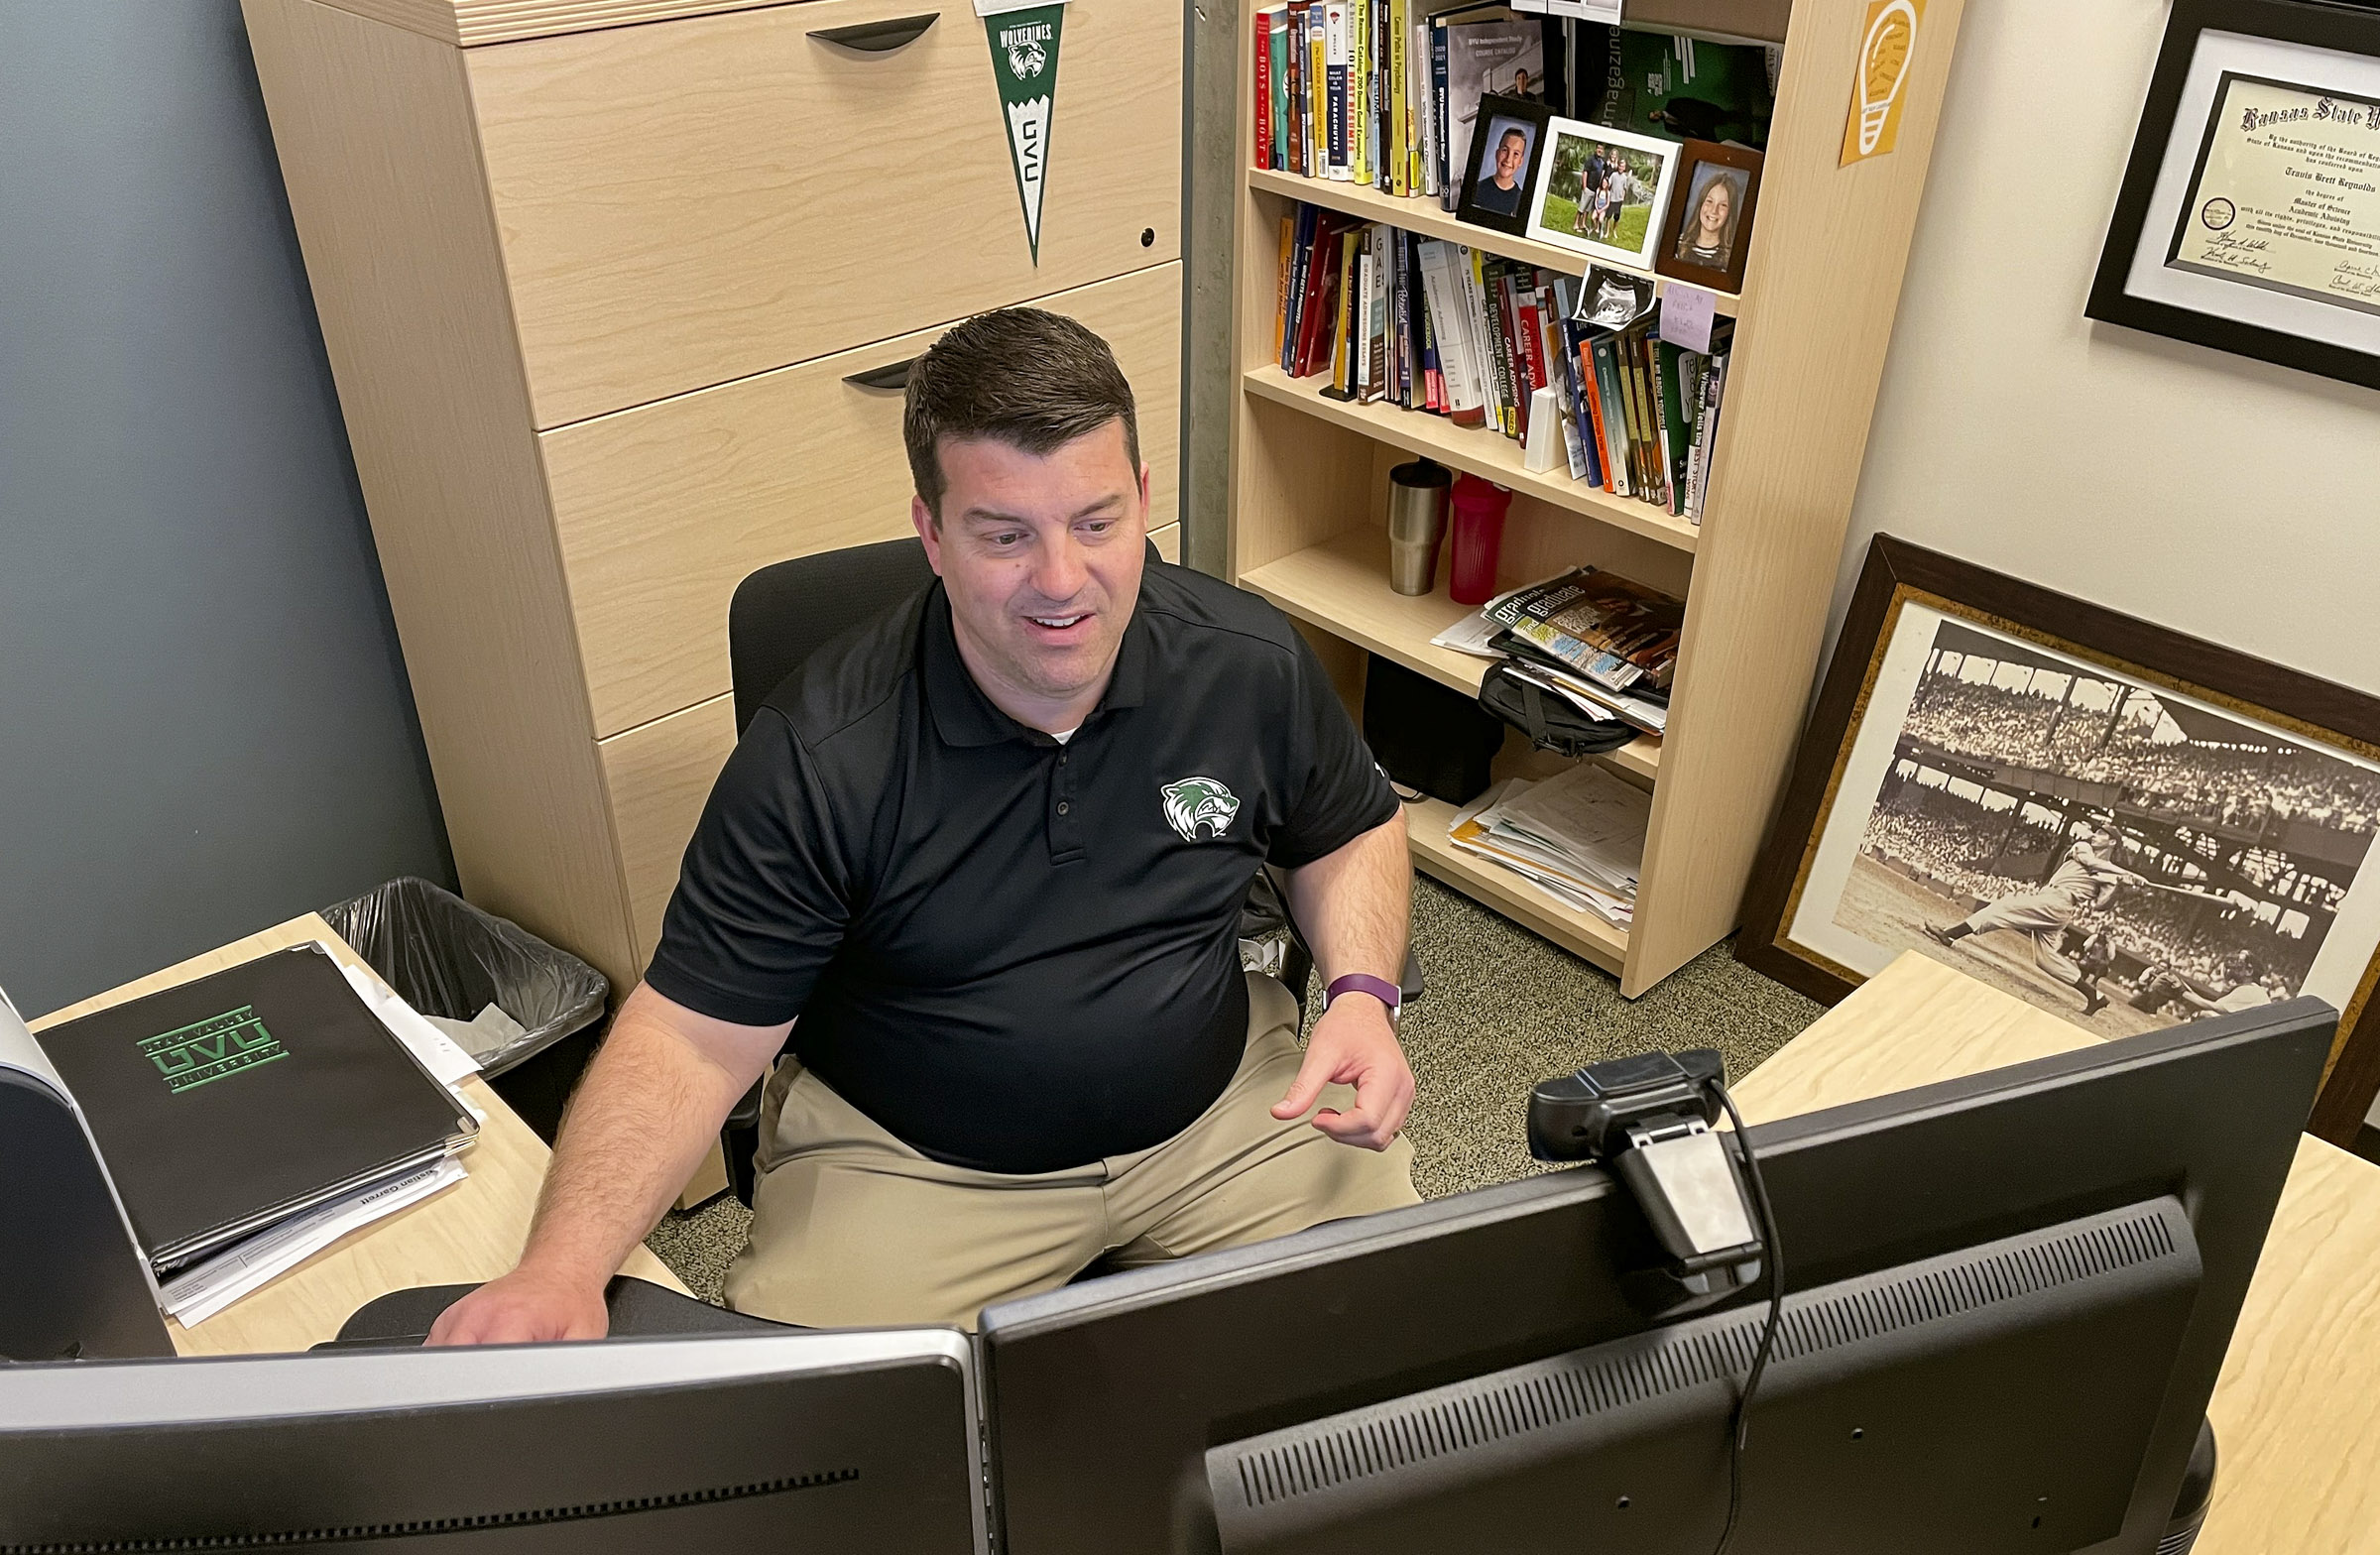 UVUU career counselor Travis Reynolds helps a student with her LinkedIn profile and portfolio during a virtual call in his office in the Career Development Center on the UVUU campus April 2, 2021.